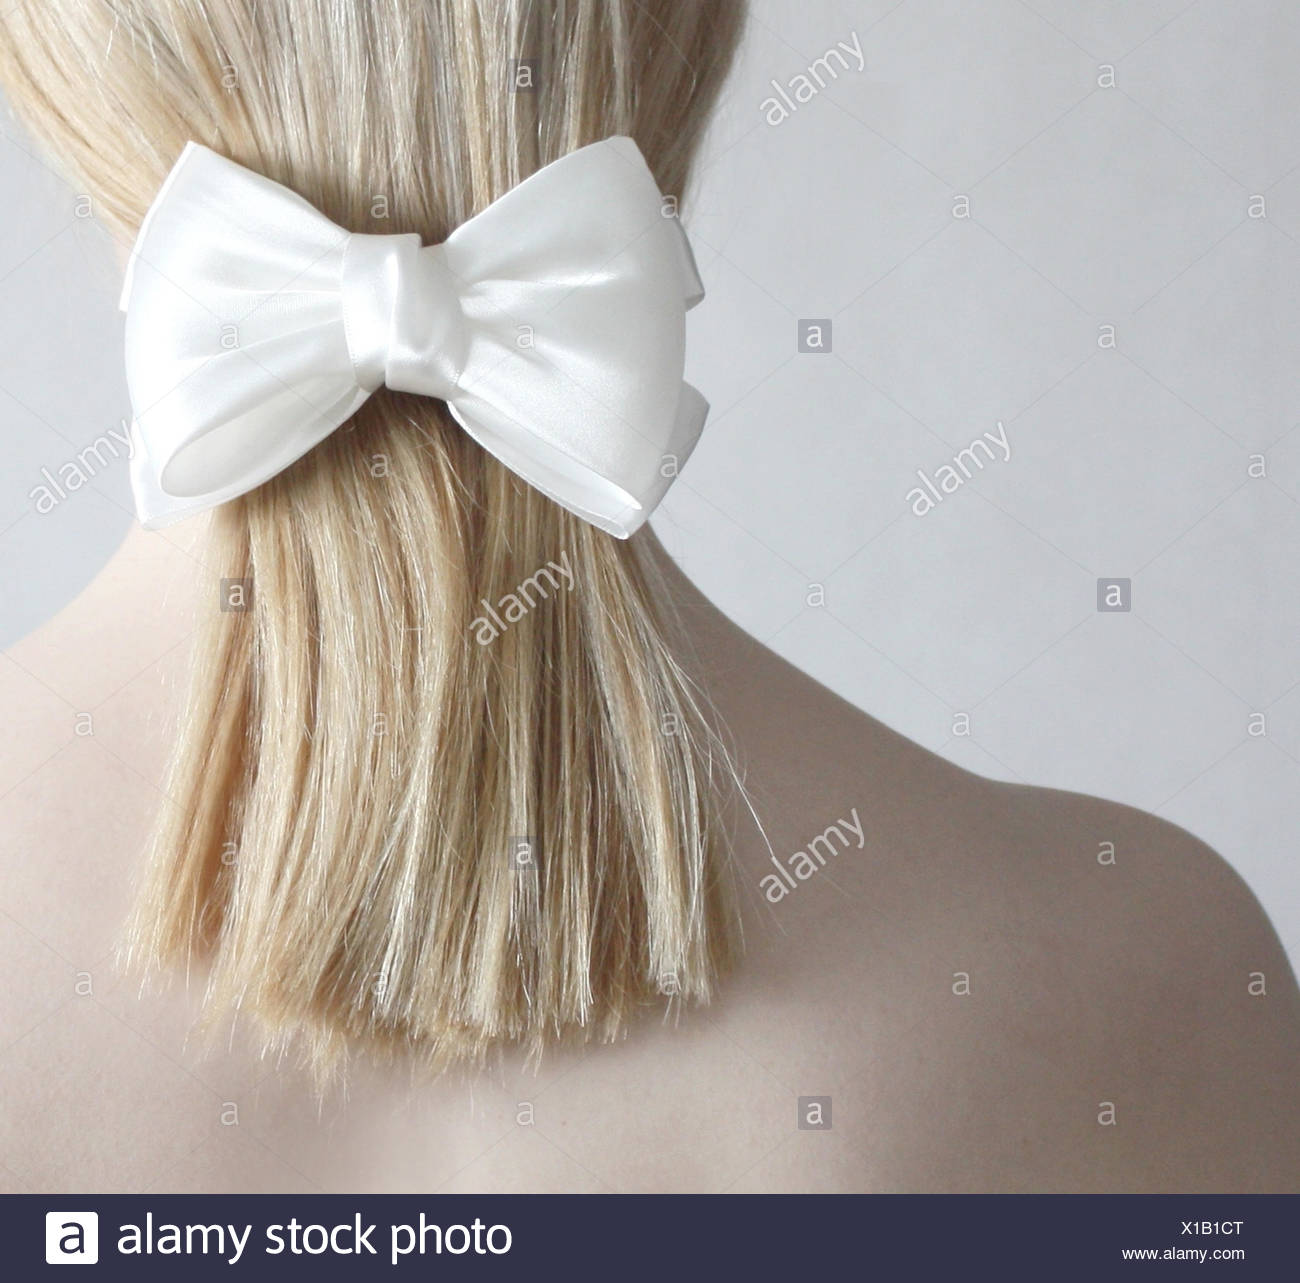 Rear view of blonde woman with a pony tail and white bow - Stock Image